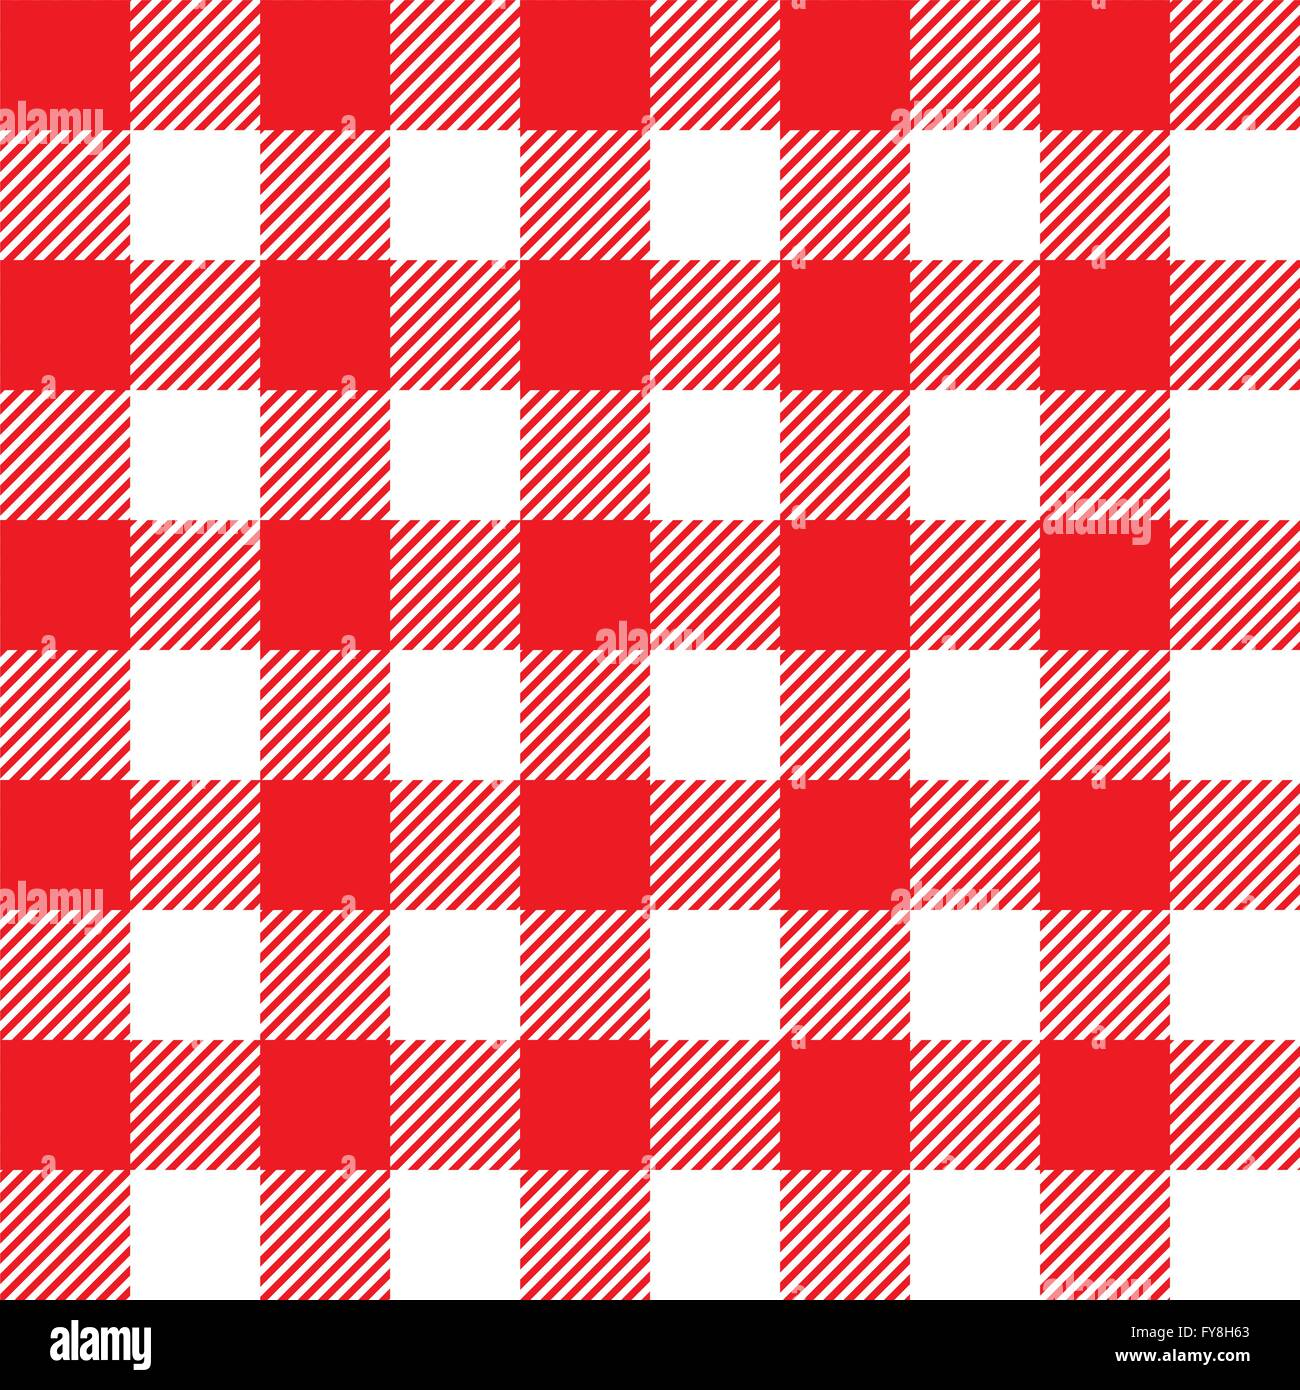 Red Tablecloth Seamless Pattern. Vector Illustration Of Traditional Gingham  Dining Cloth With Fabric Texture. Checkered Picnic C